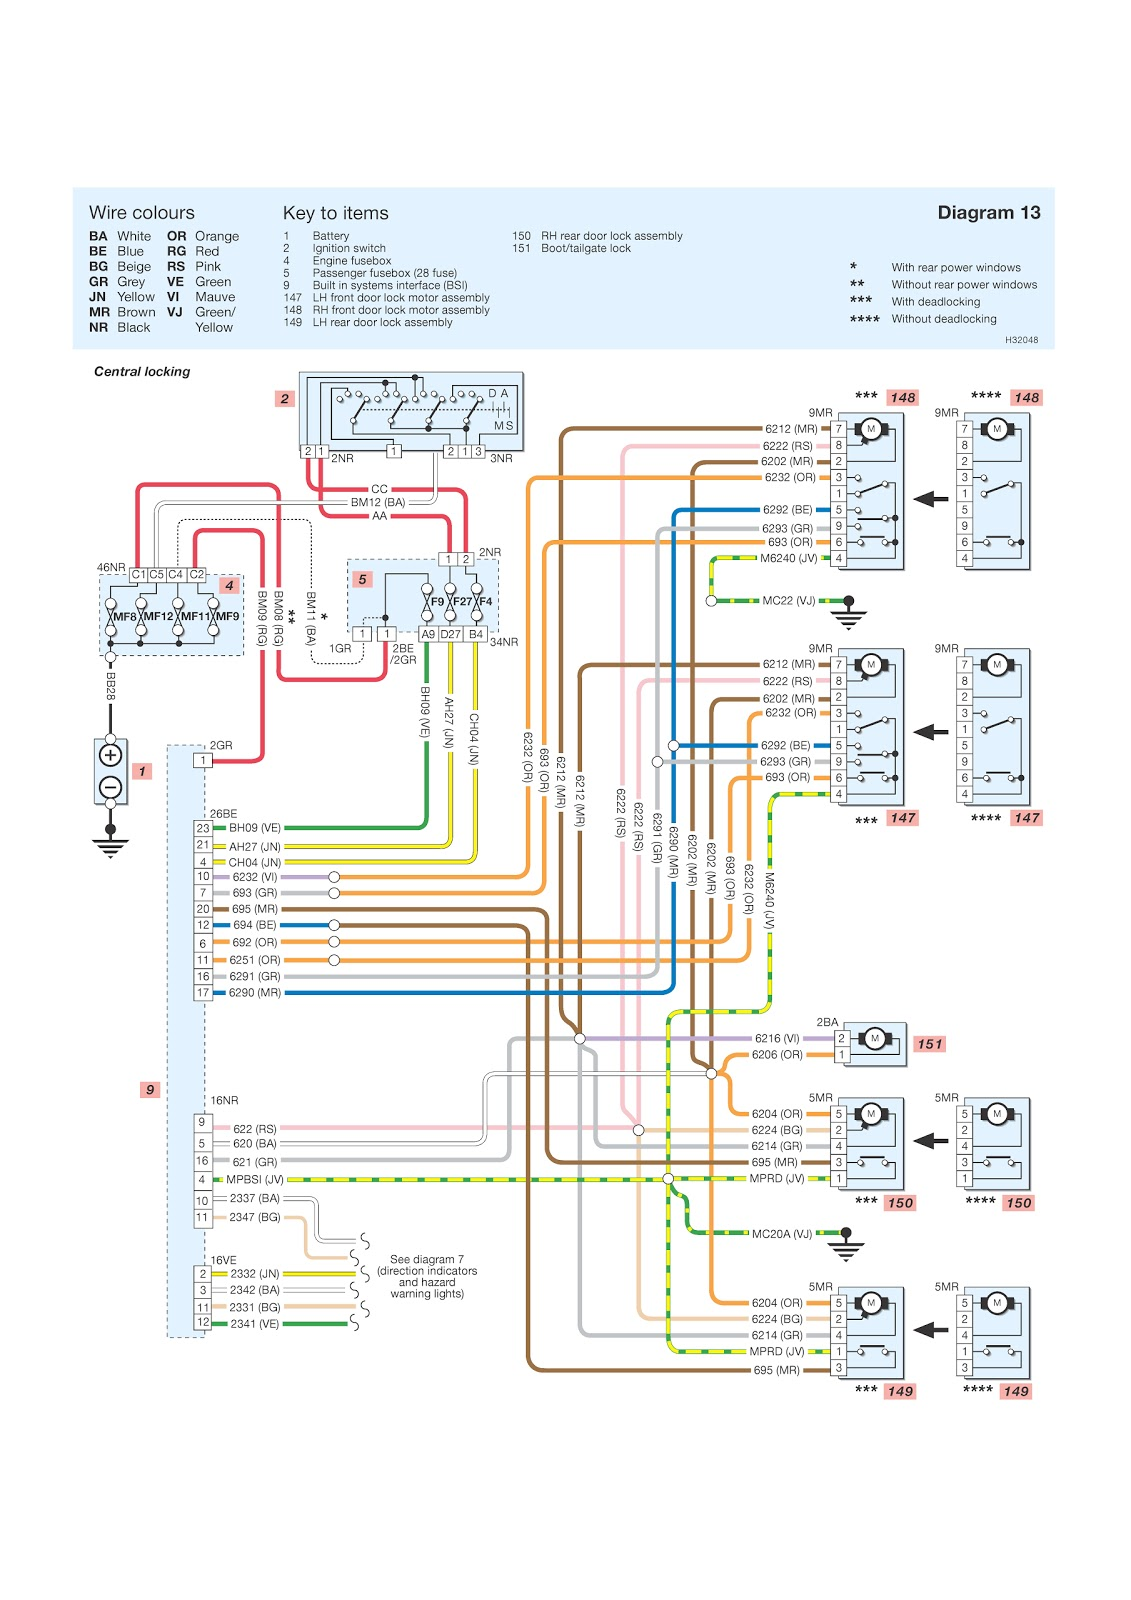 2015 Camaro Rear ke Light Wiring Diagram - New Era Of Wiring ... on